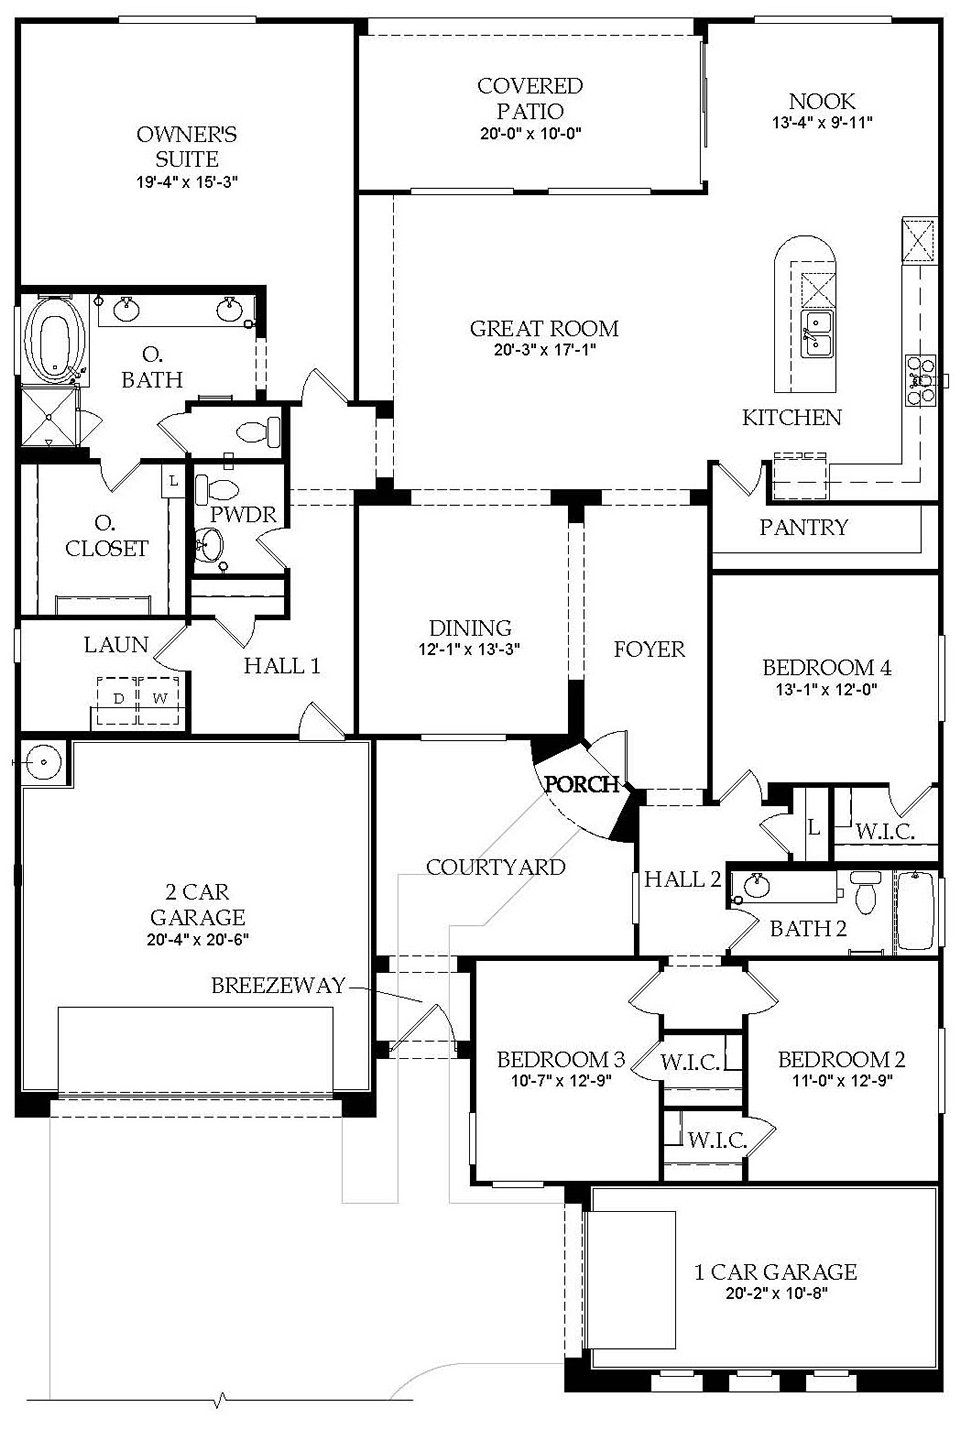 Centex home floor plans florida for Sullivan floor plan